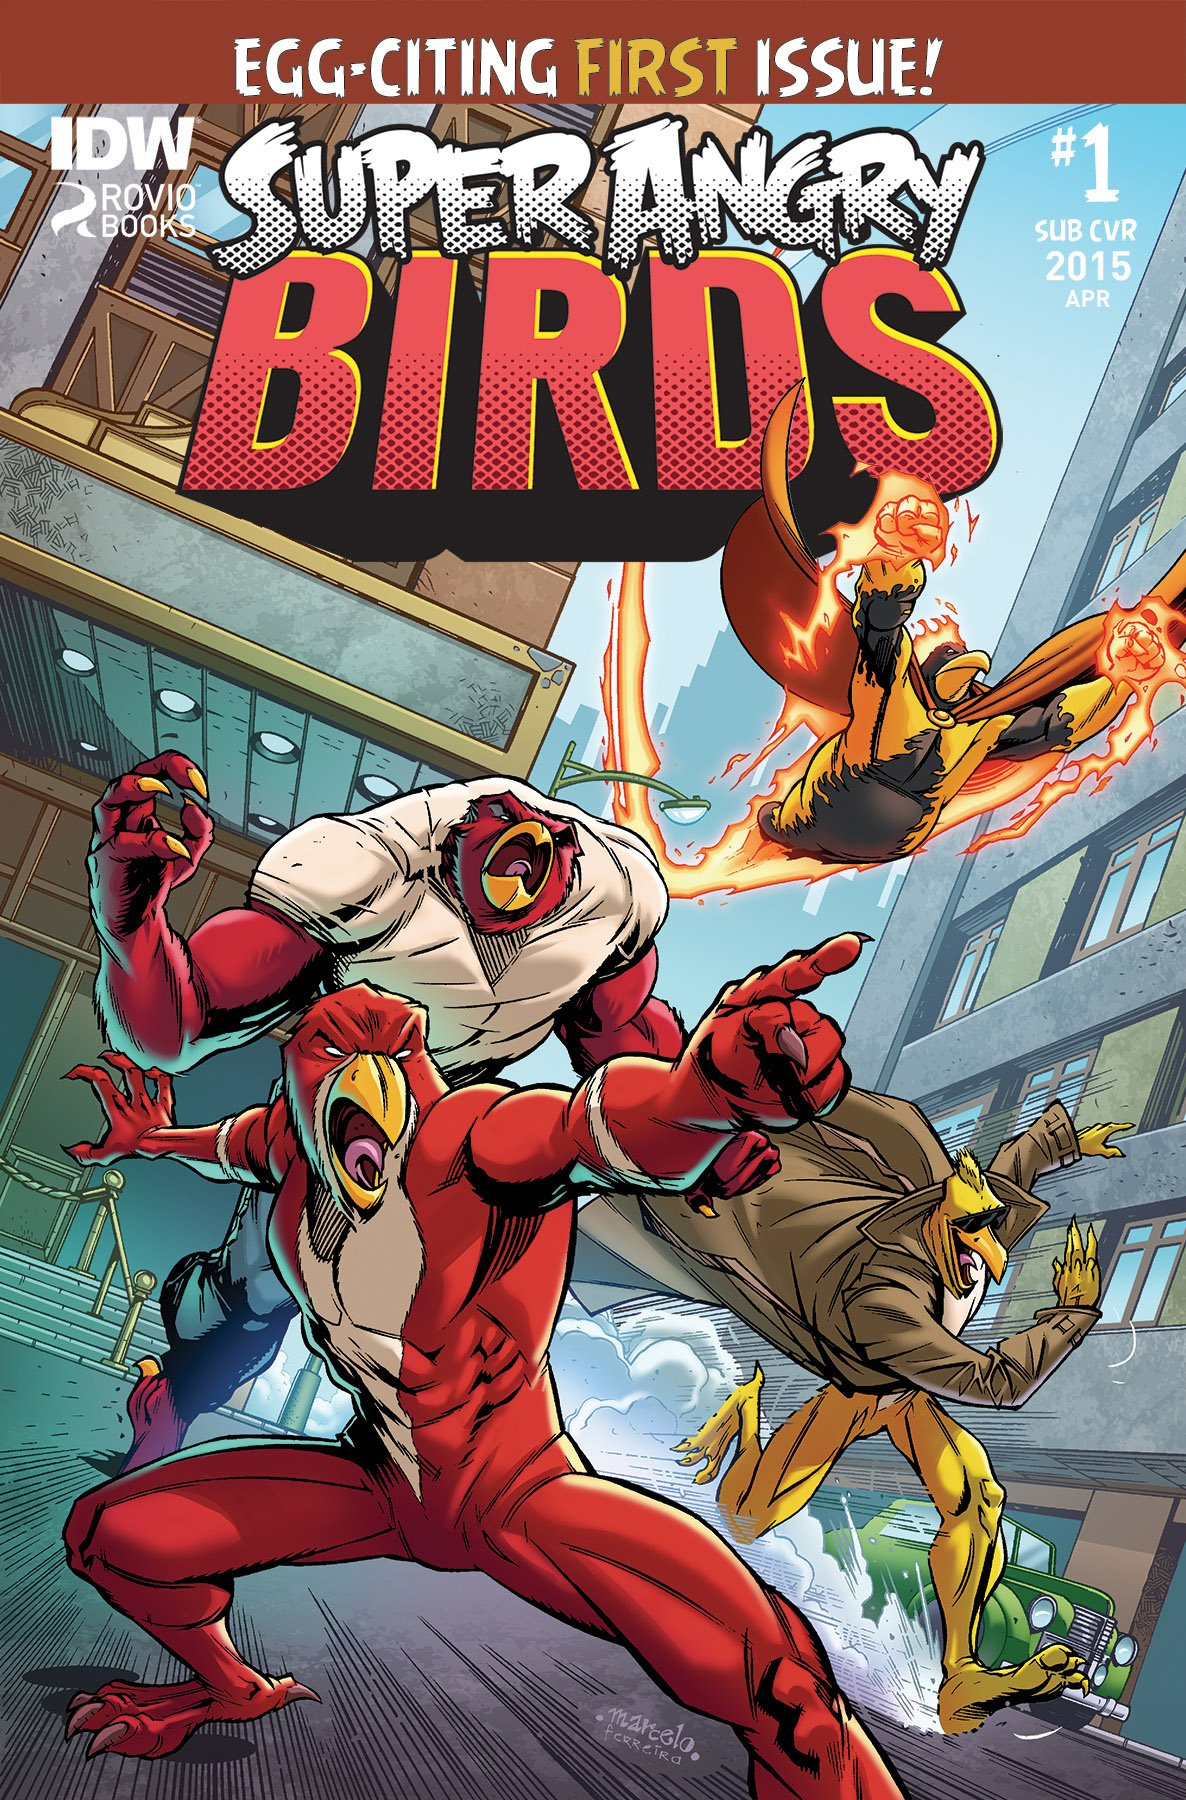 Super Angry Birds 01 (subscriber cover)